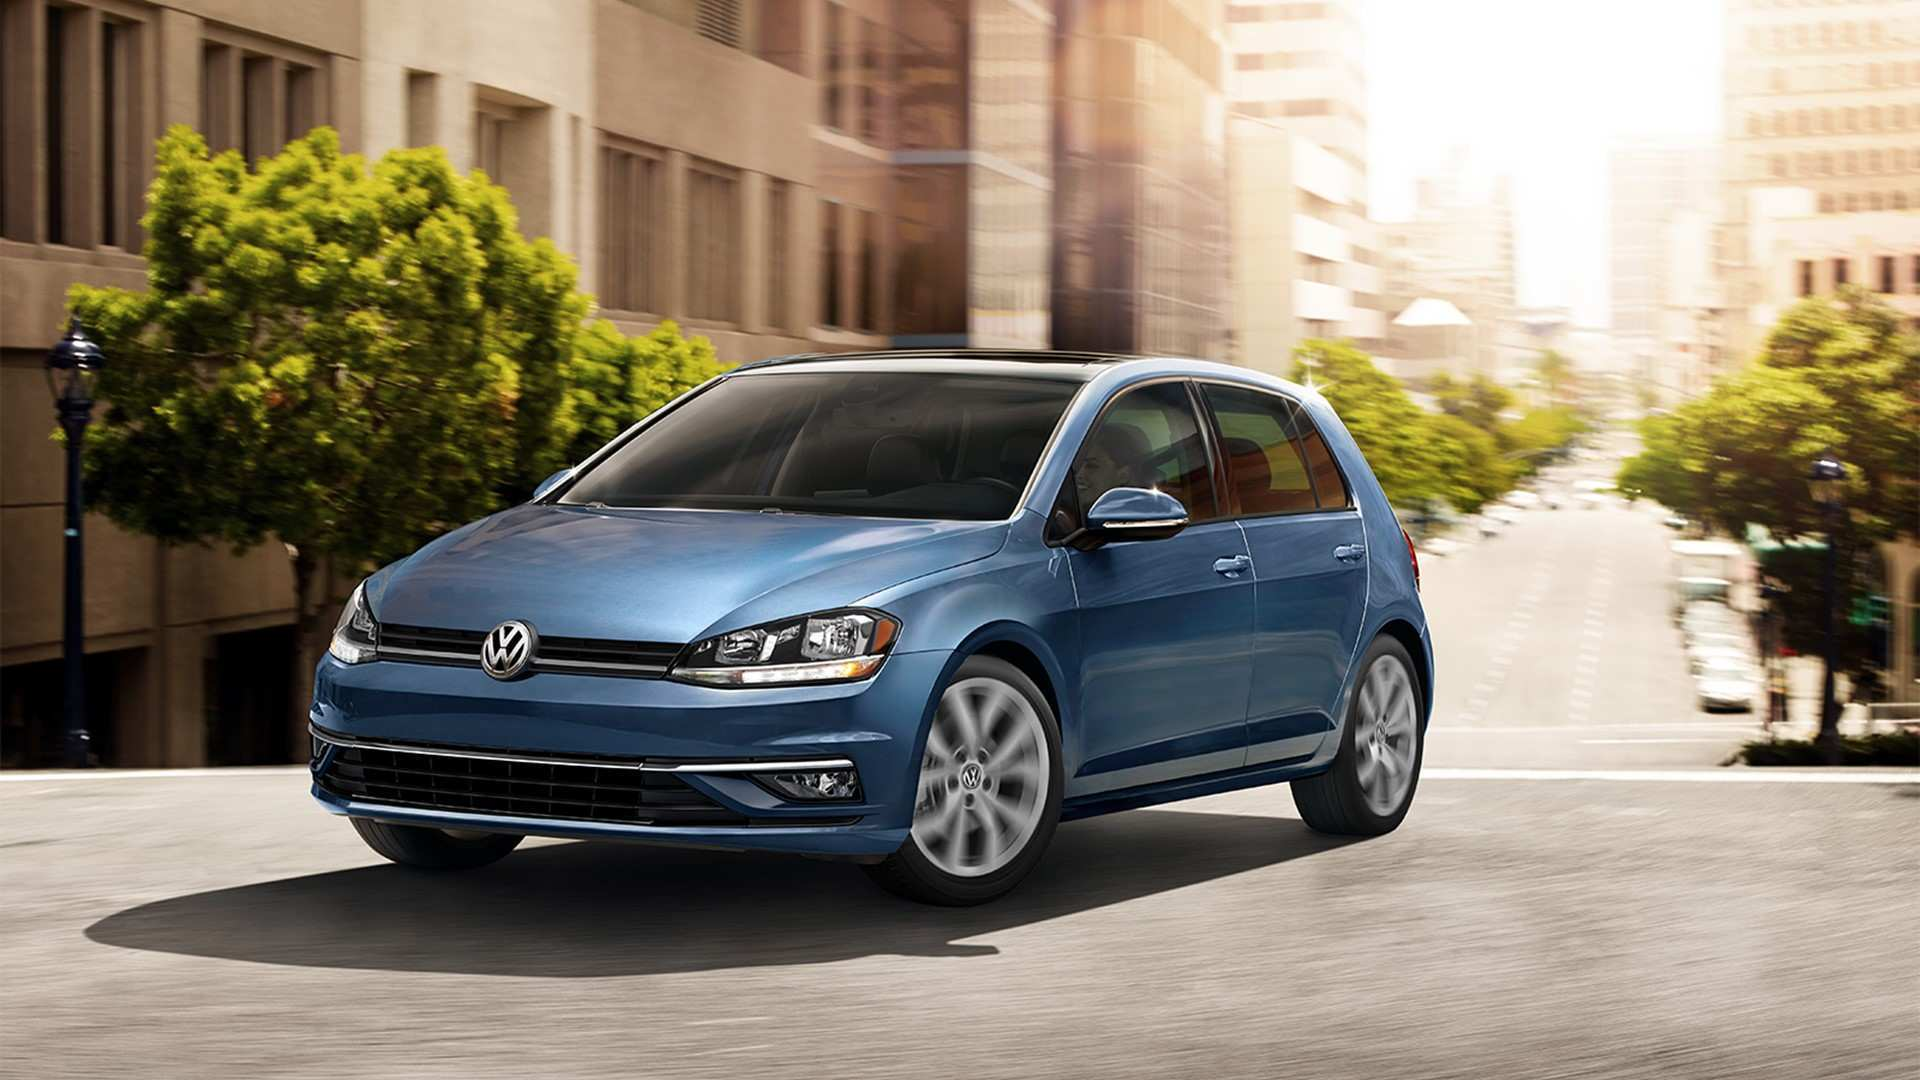 38 Best Review Volkswagen Hybrid 2019 Performance And New Engine First Drive with Volkswagen Hybrid 2019 Performance And New Engine